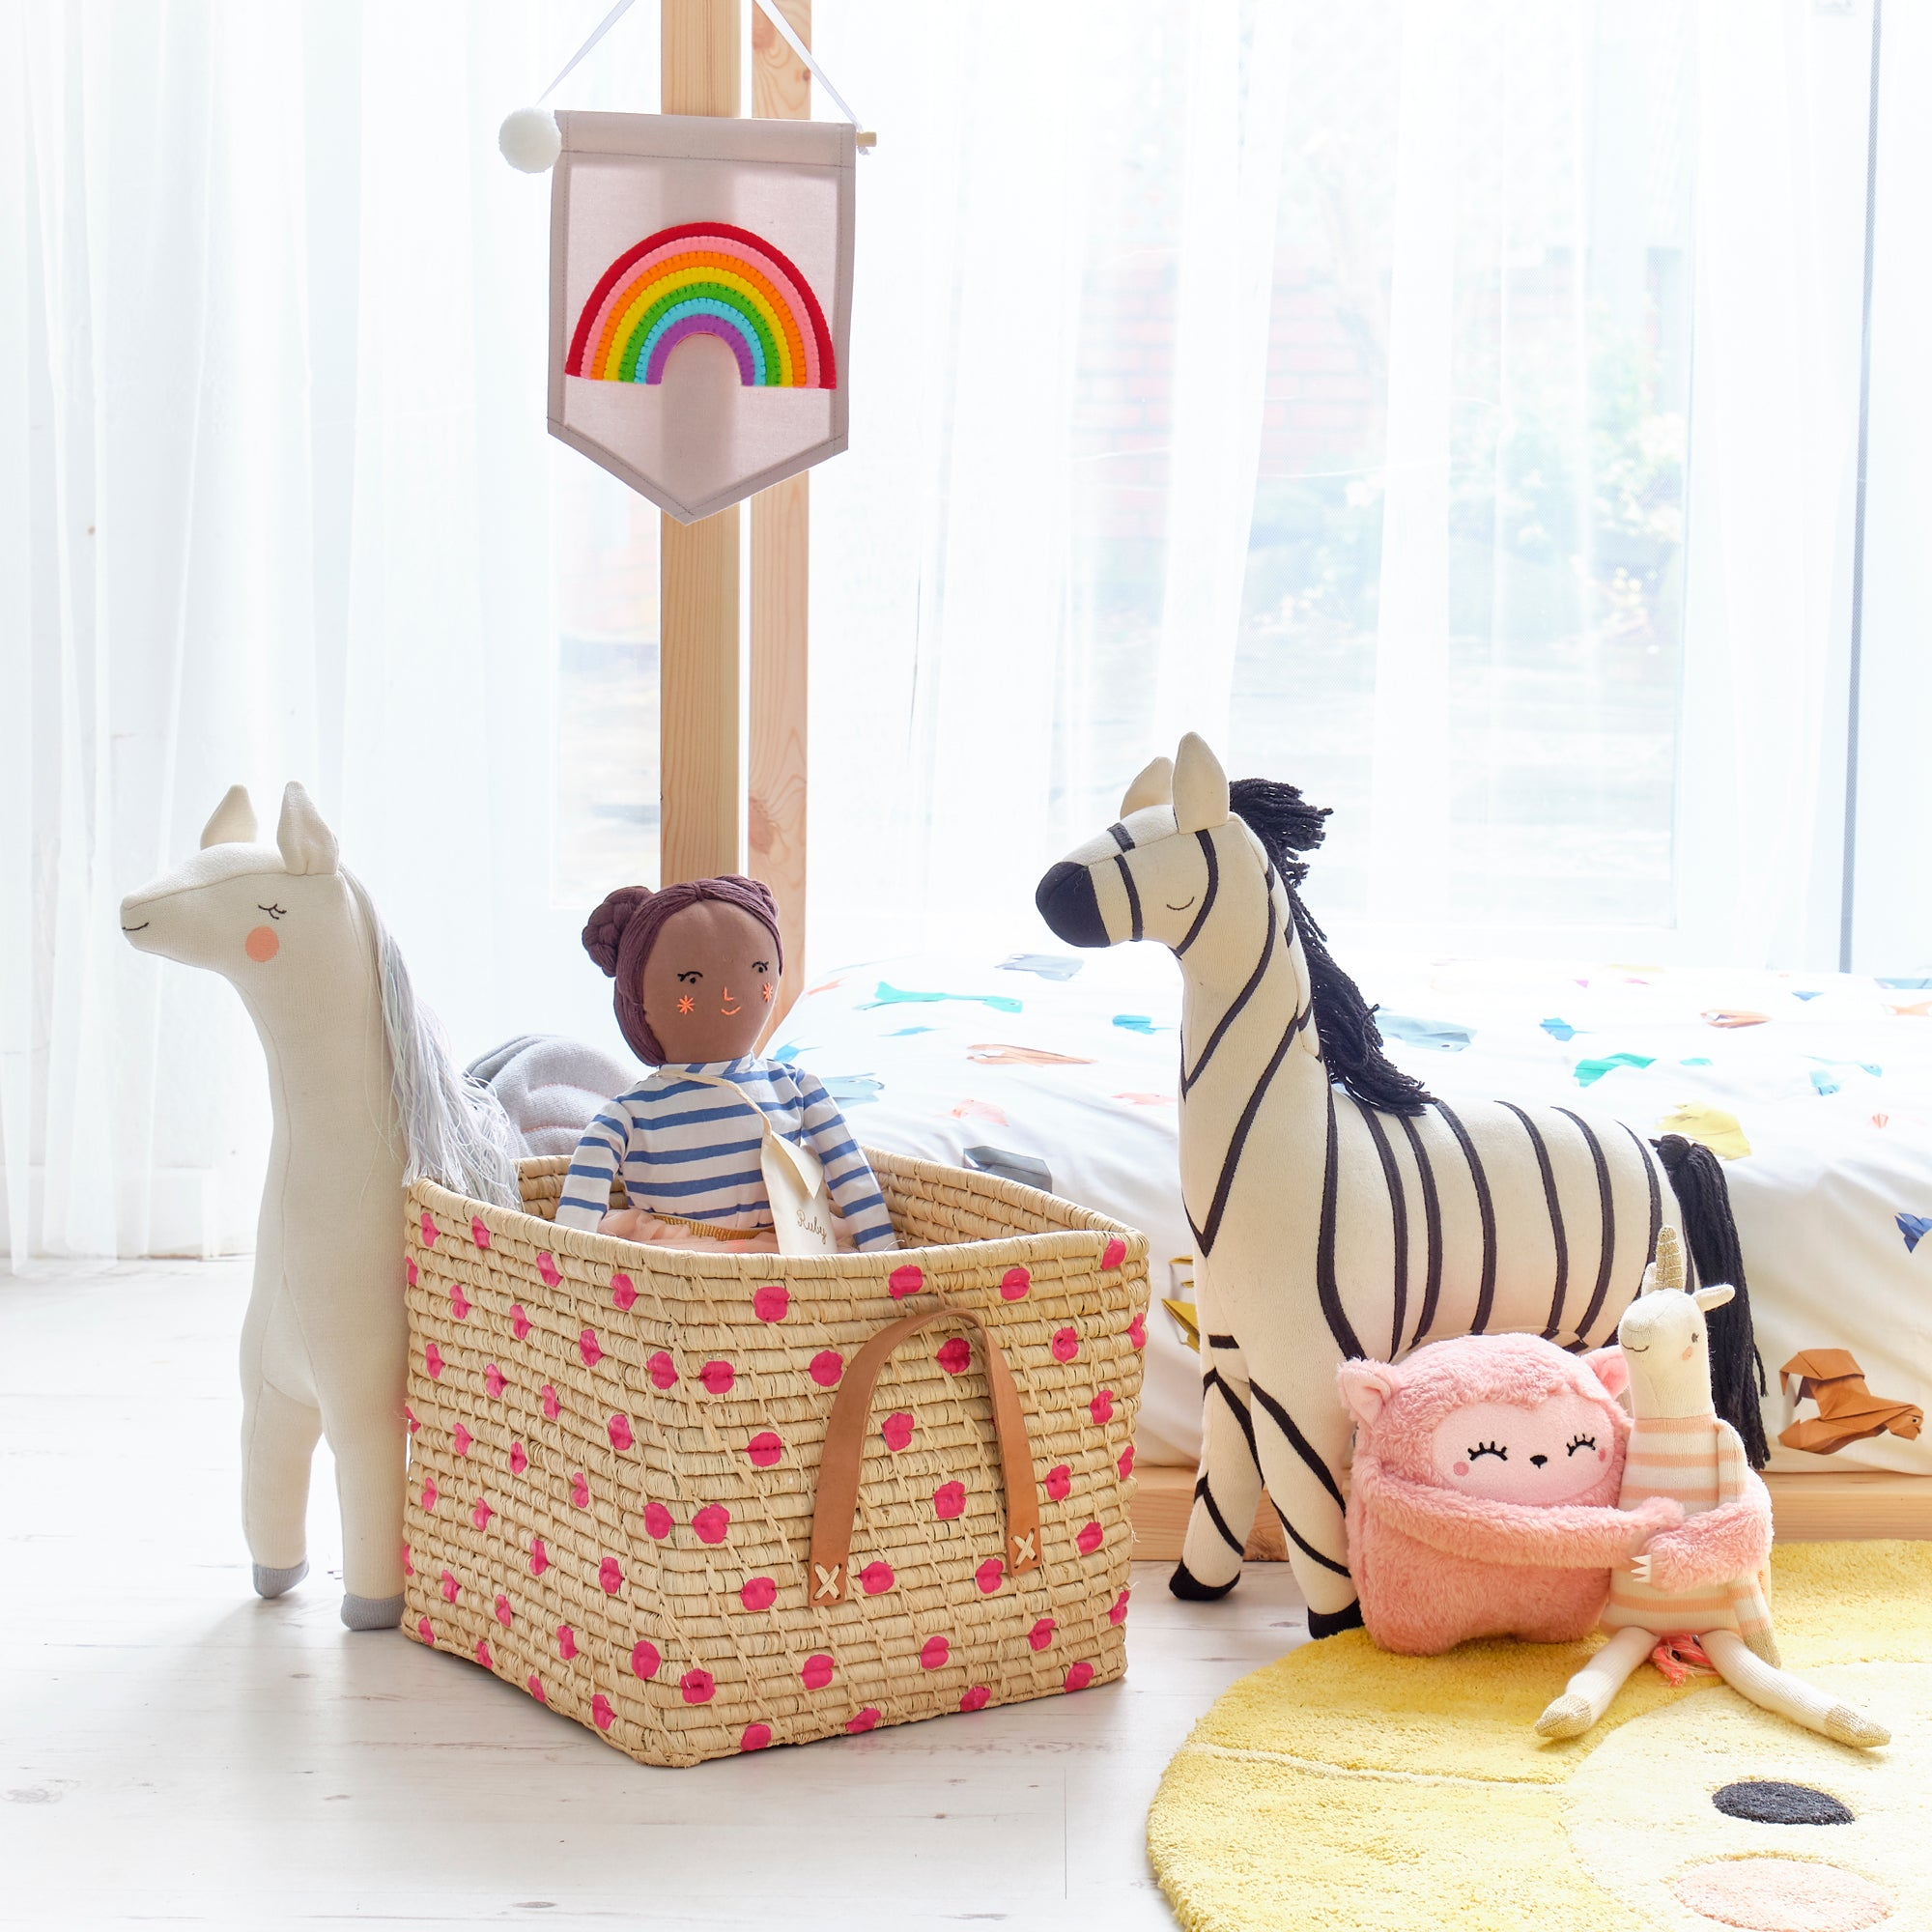 Children's Toys and Accessories, styled by Bobby Rabbit.